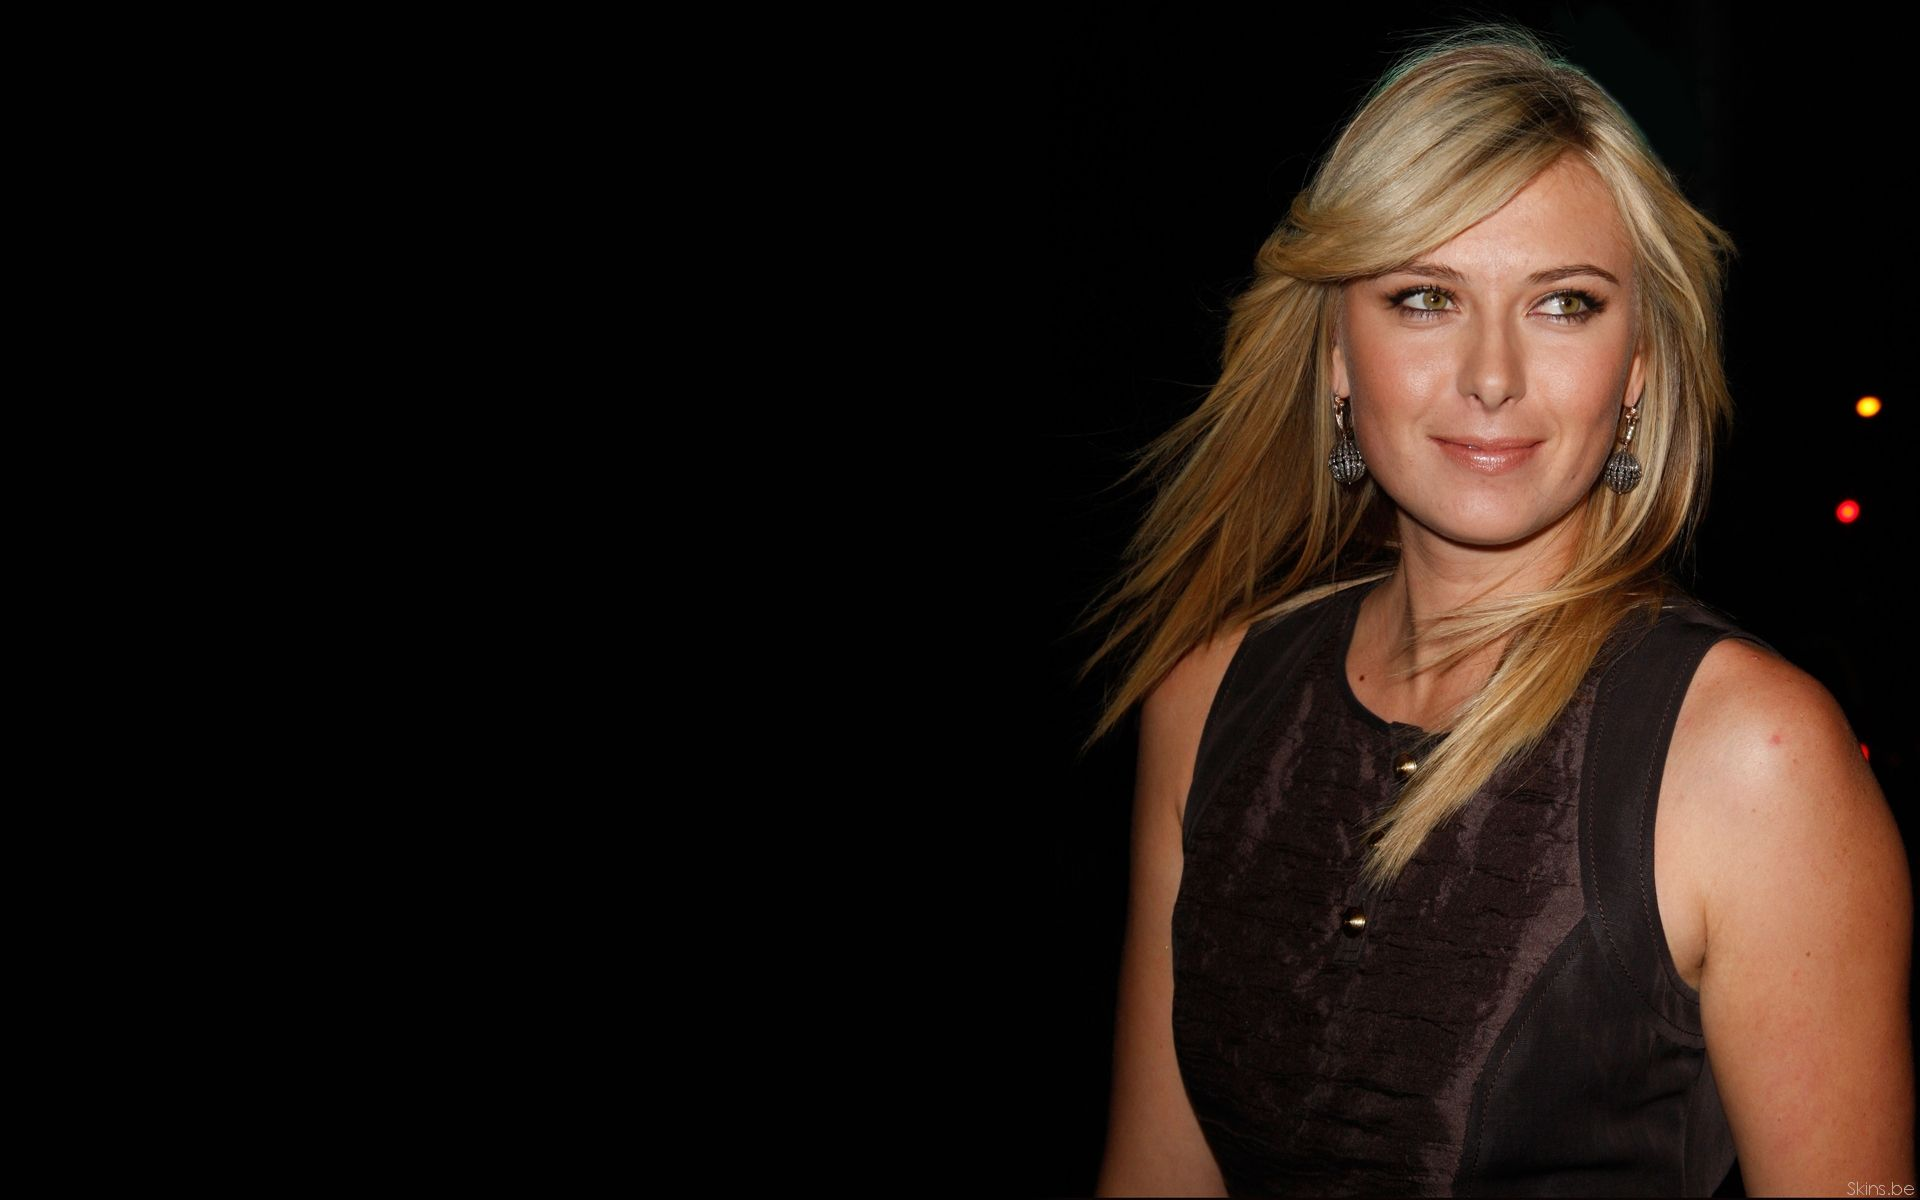 Maria Sharapova HD Wallpapers | Most beautiful places in the world ...